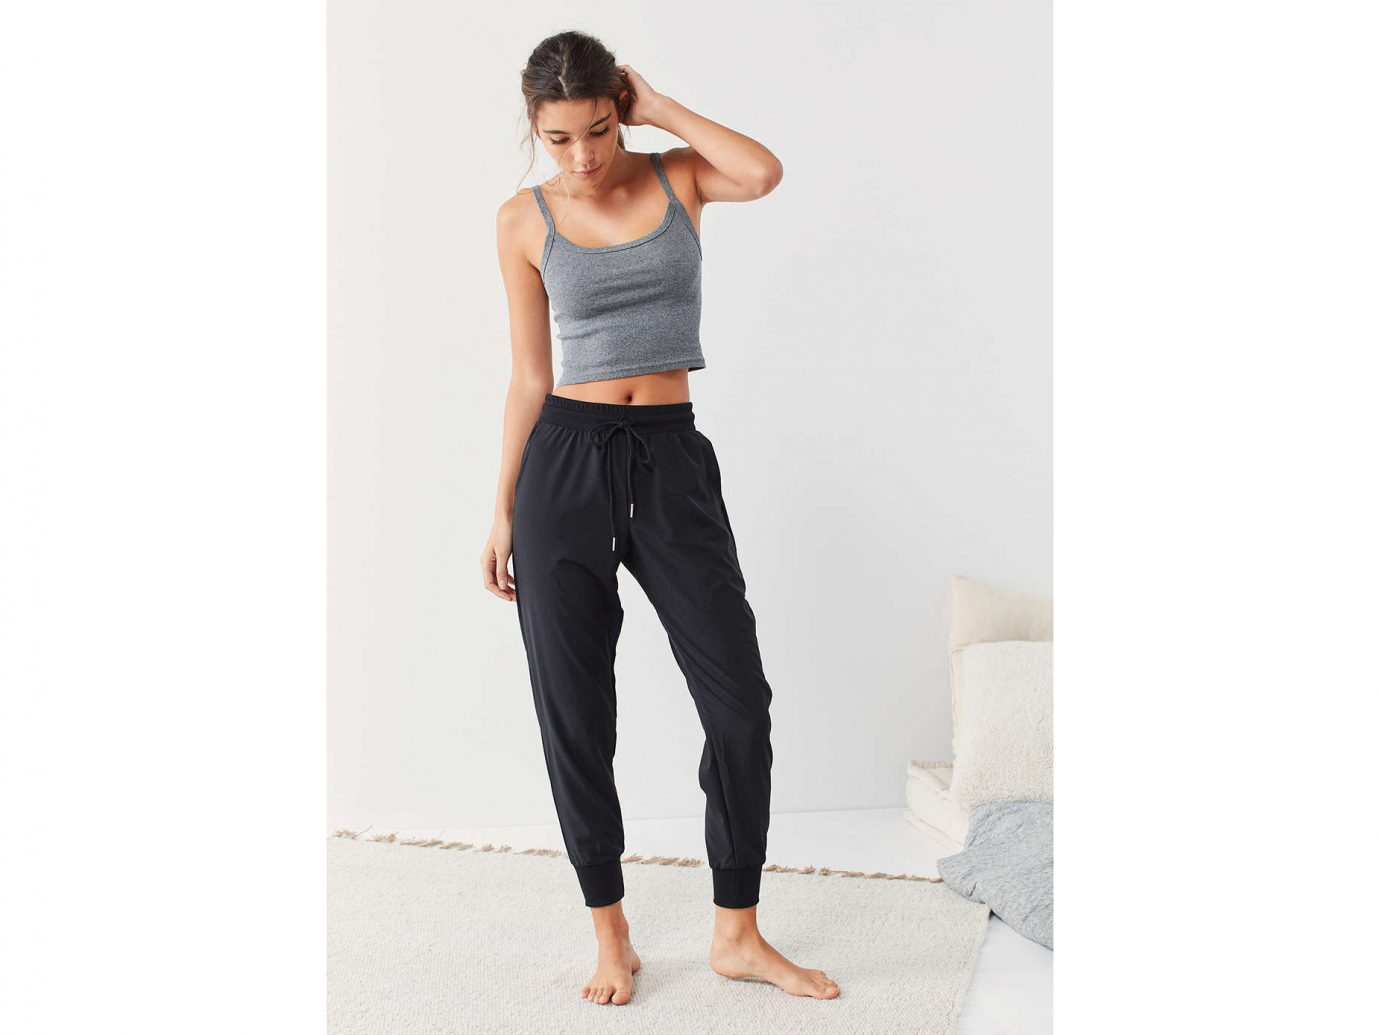 Fall Travel Style + Design Travel Shop Weekend Getaways person standing shoulder joint human leg abdomen jeans waist active undergarment leg trouser arm trunk trousers physical fitness calf leggings sportswear neck Hip thigh knee physical exercise tights posing